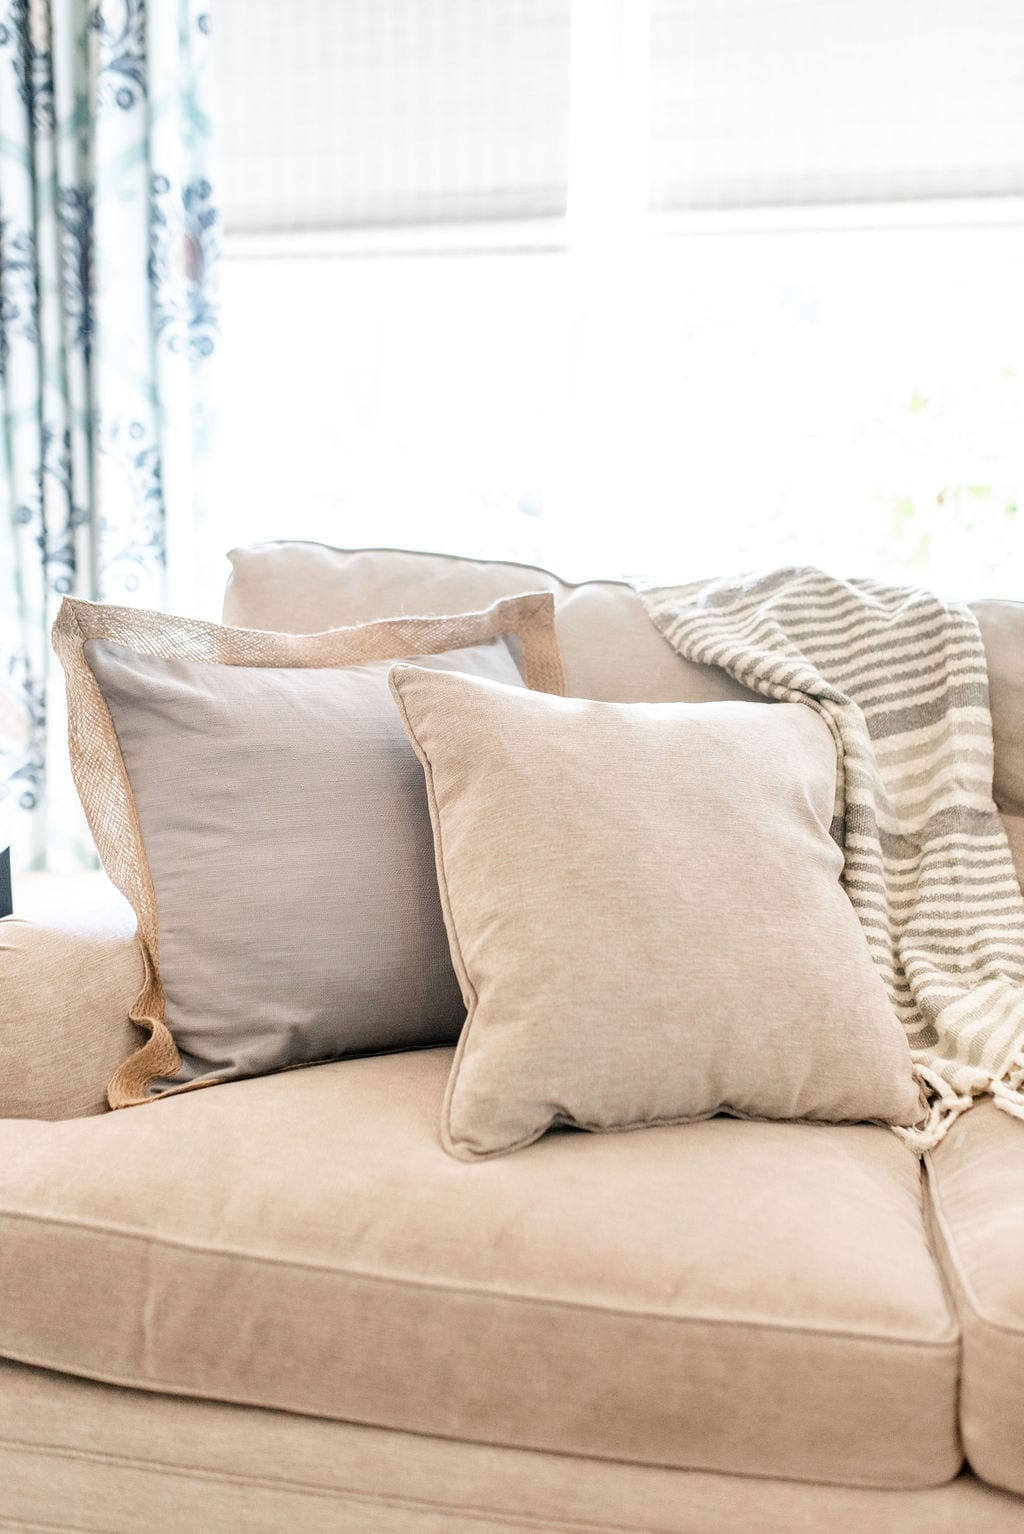 Chenille Taupe Couch with burlap throw pillow. Theordore Alexander couch with taupe stripe throw blanket from Wayfair.